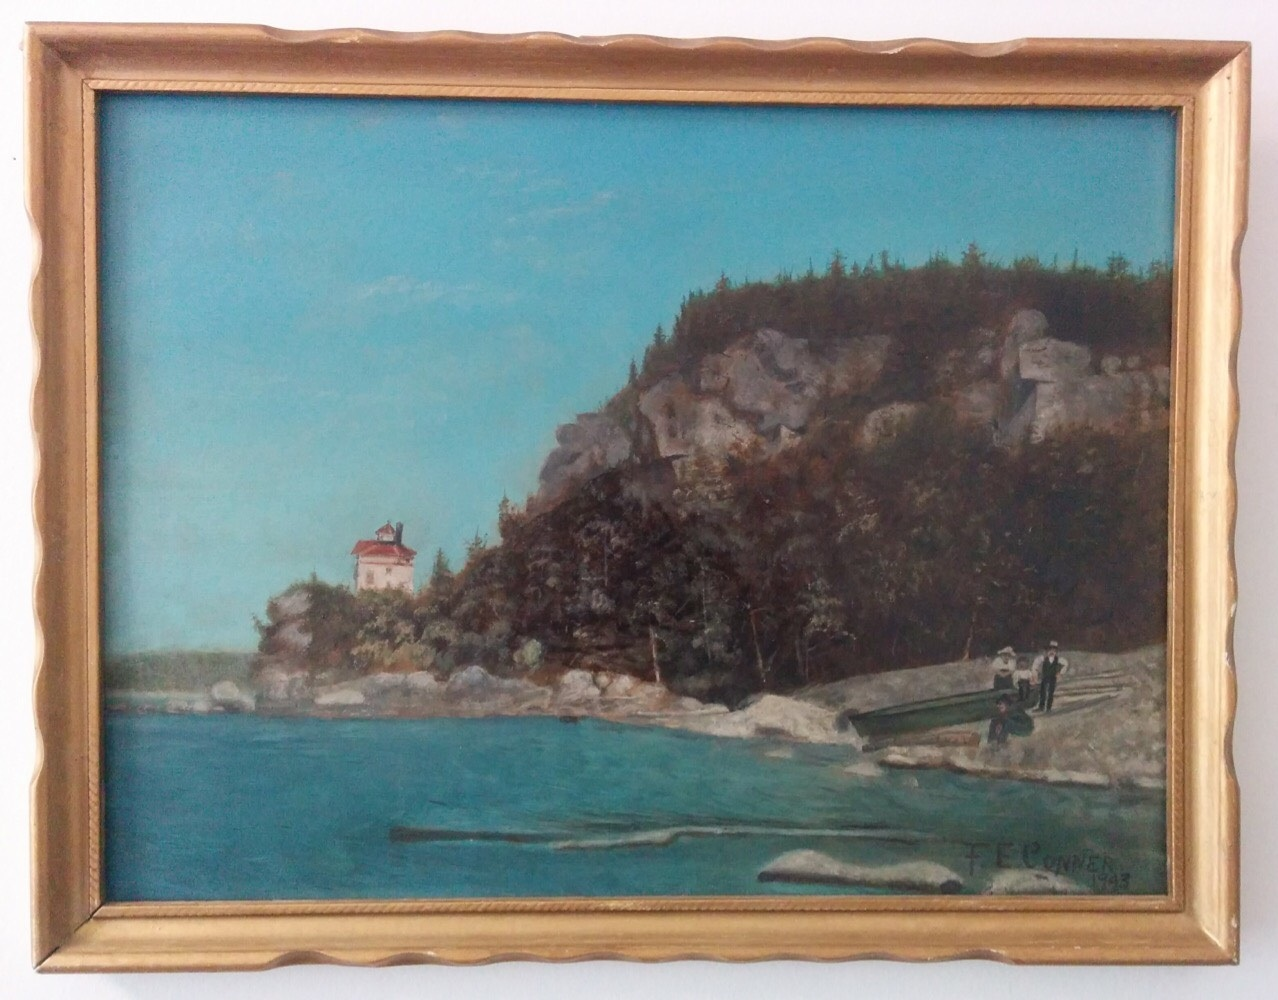 Canadian Folk oil on board - Signed F.E. Conner194311.5